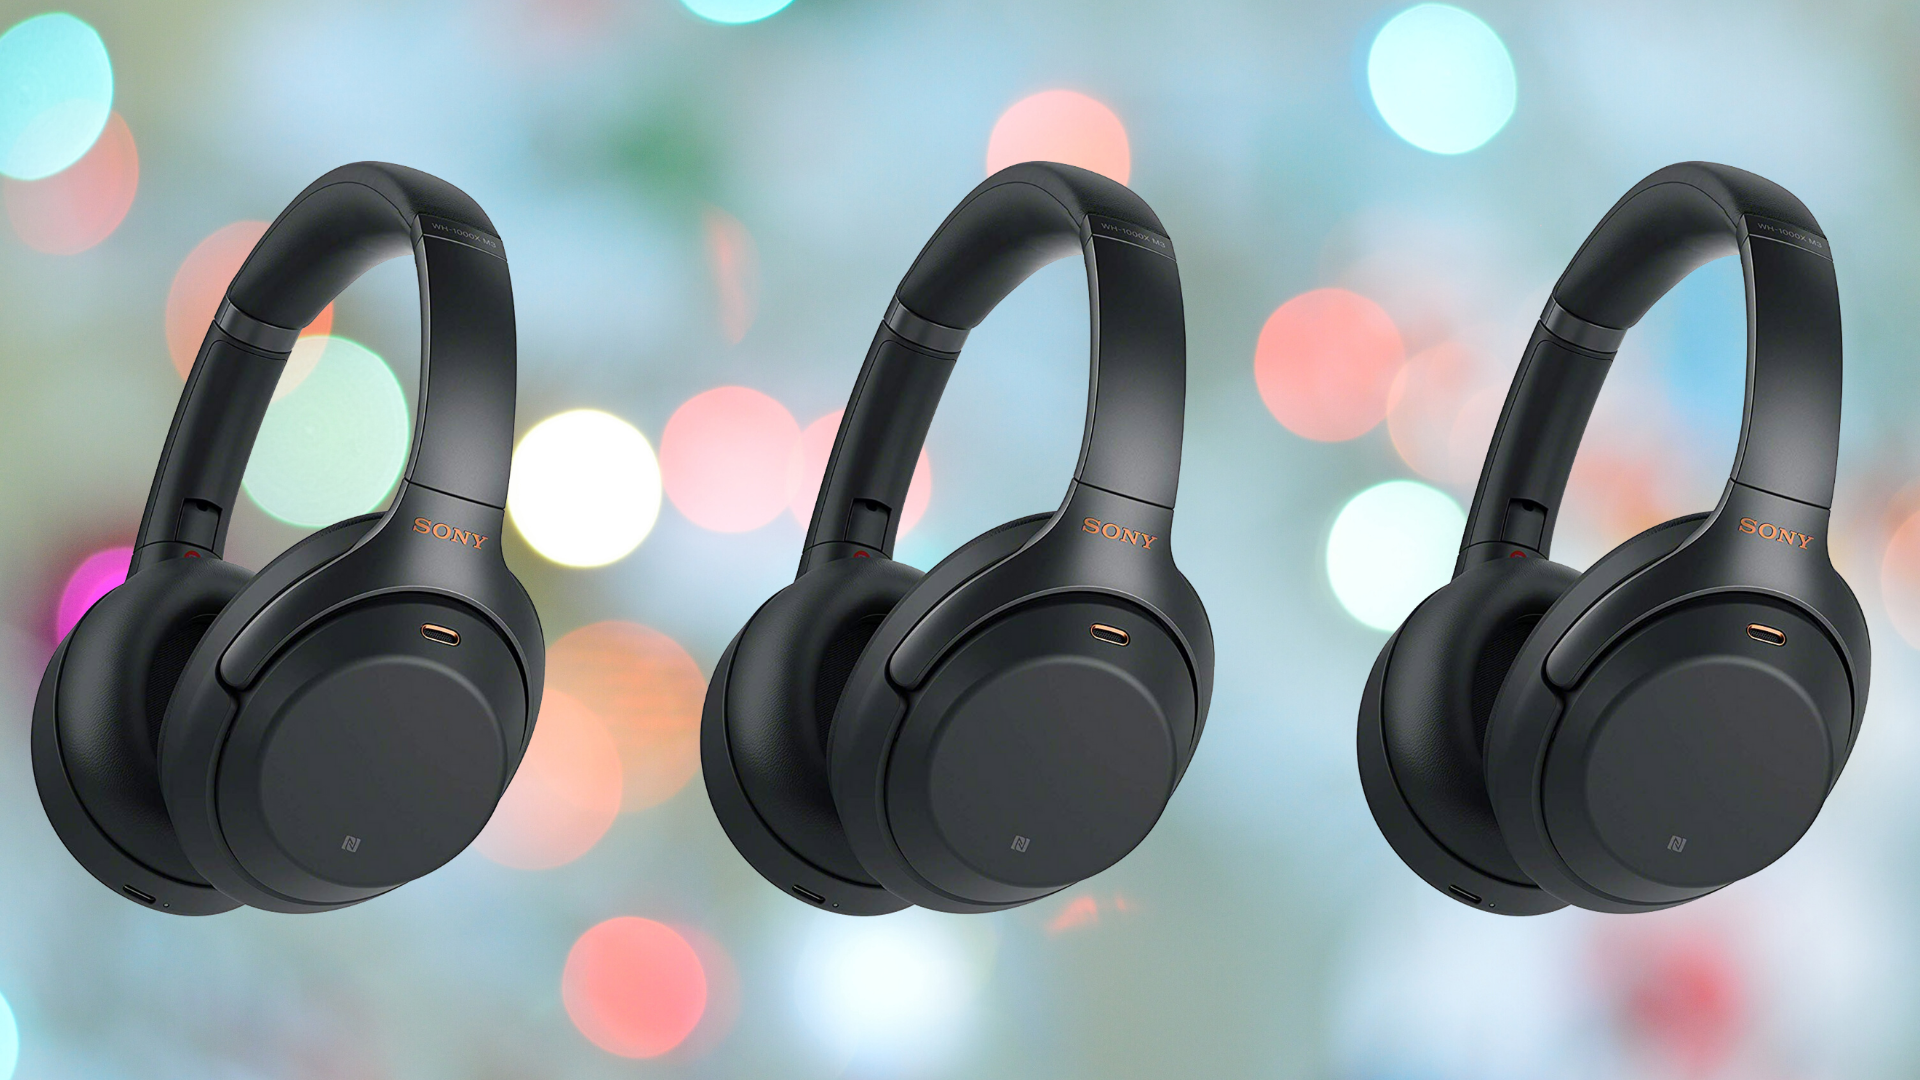 Black Friday in March: Sony's iconic noise-canceling headphones are at their lowest price ever!